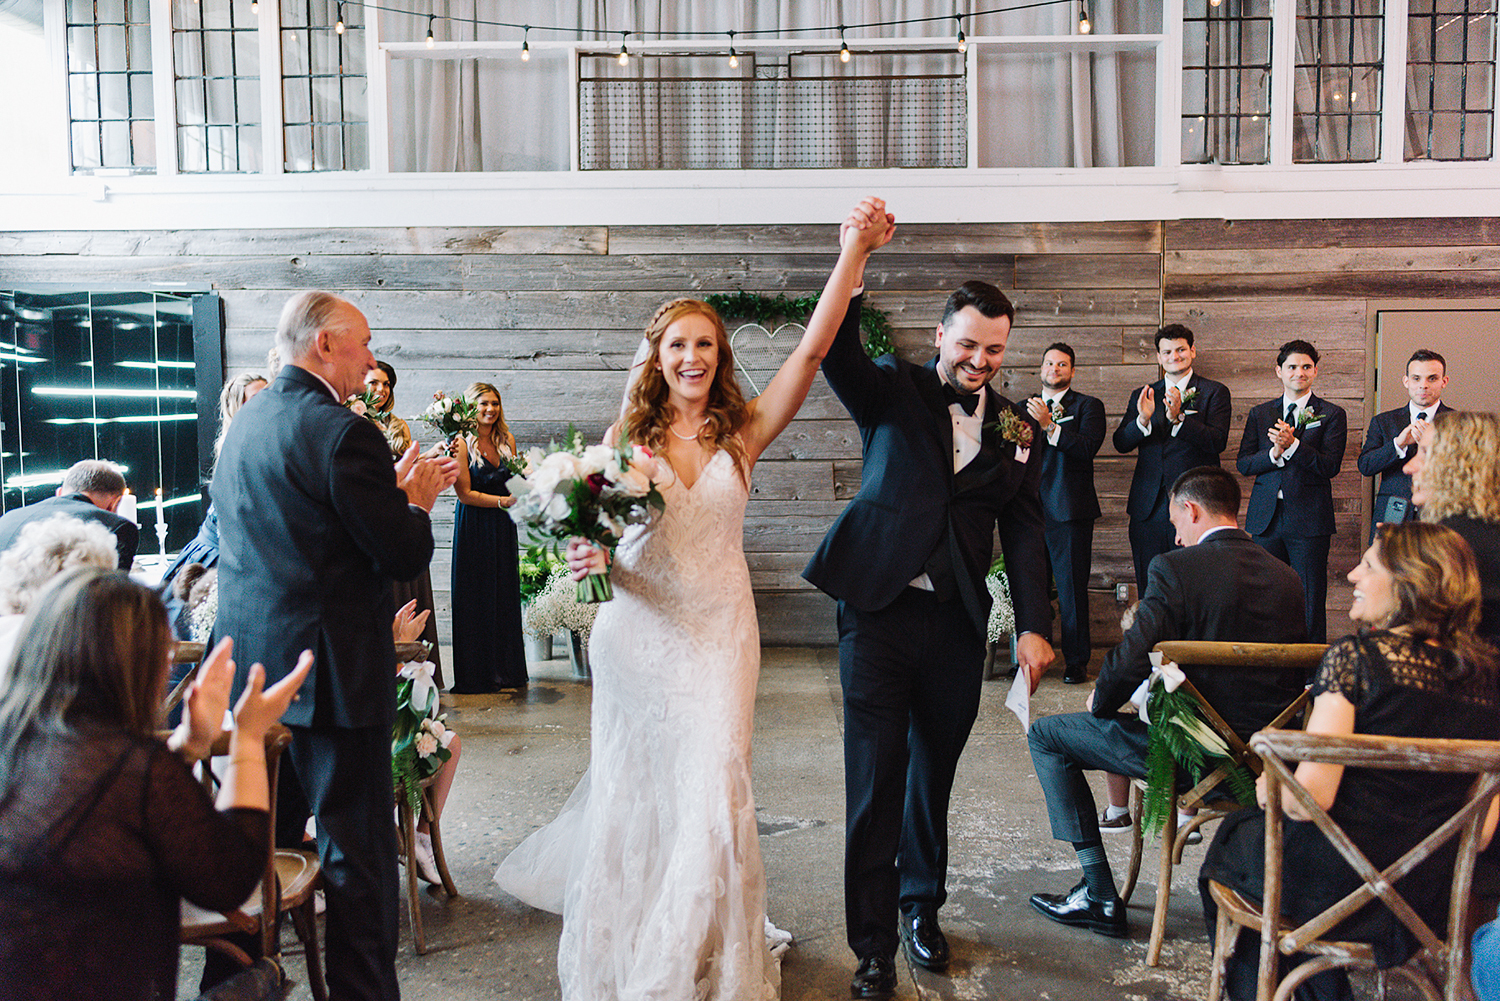 downtown-toronto-wedding-photographer-ryanne-hollies-photography-airship37-distillery-district-wedding-day-modern-minimalist-venues-in-toronto-ceremony-documentary-moments-bride-and-groom-just-married-recessional-epic.jpg